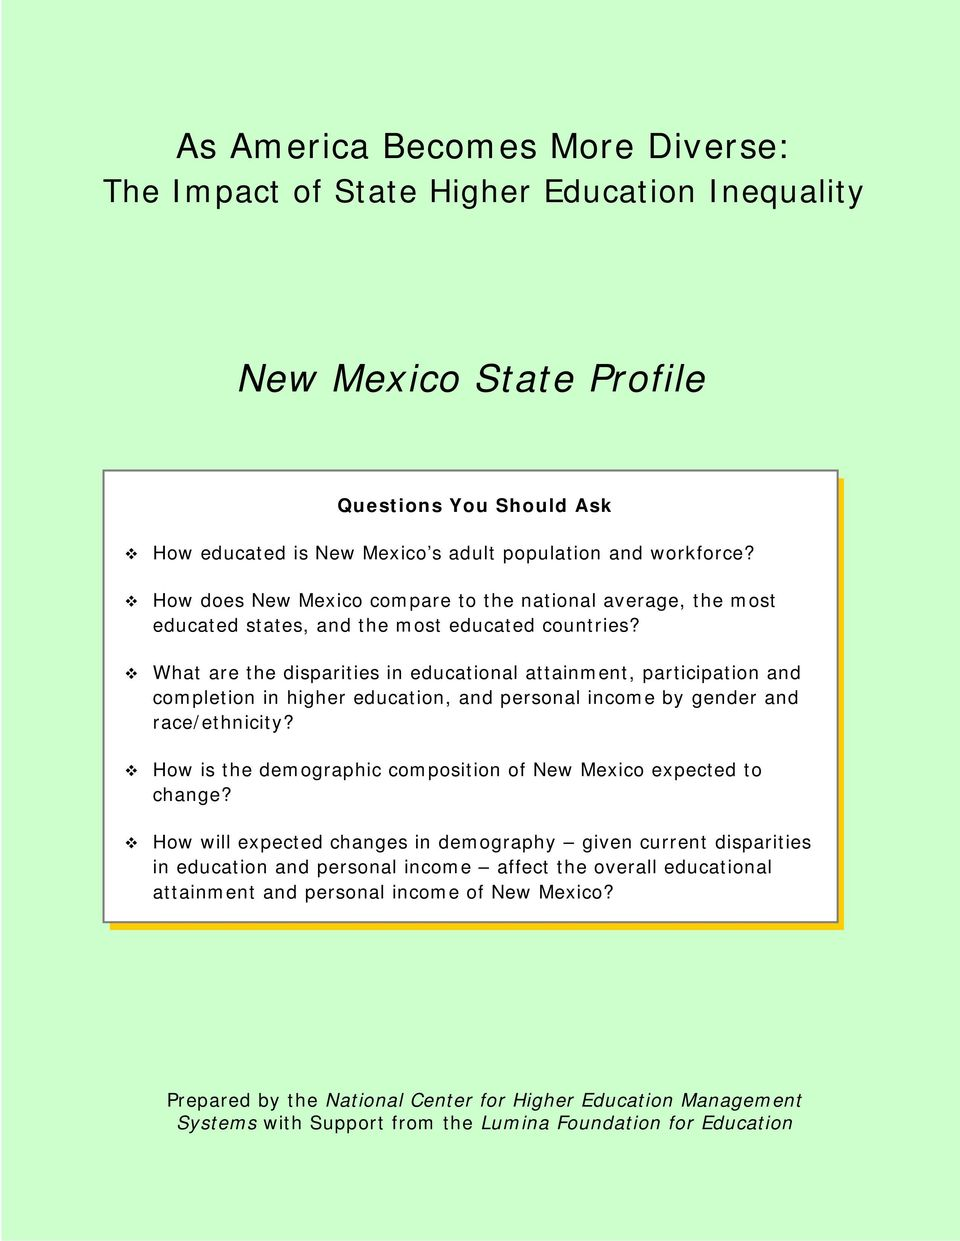 What are the disparities in educational attainment, participation and completion in higher education, and personal income by gender and race/ethnicity?